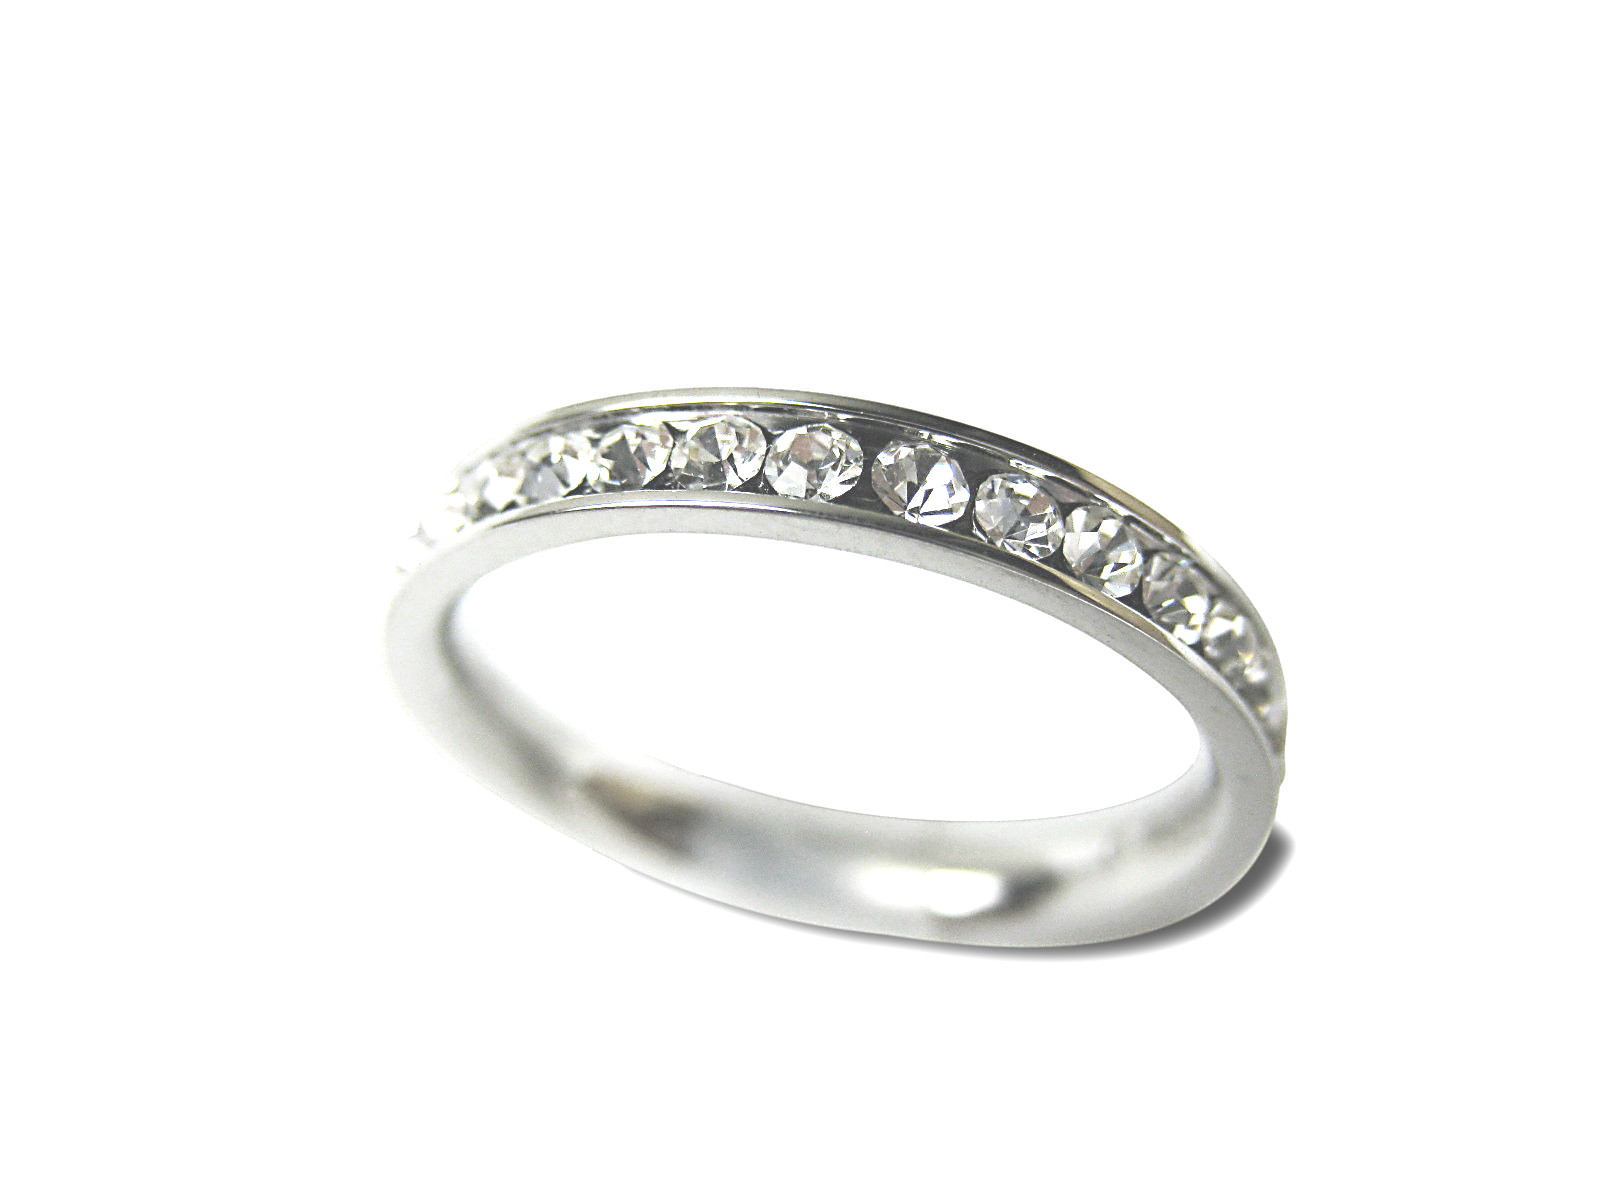 Stainless Steel Diamond Cz Eternity Wedding Band Ring - f-rg2